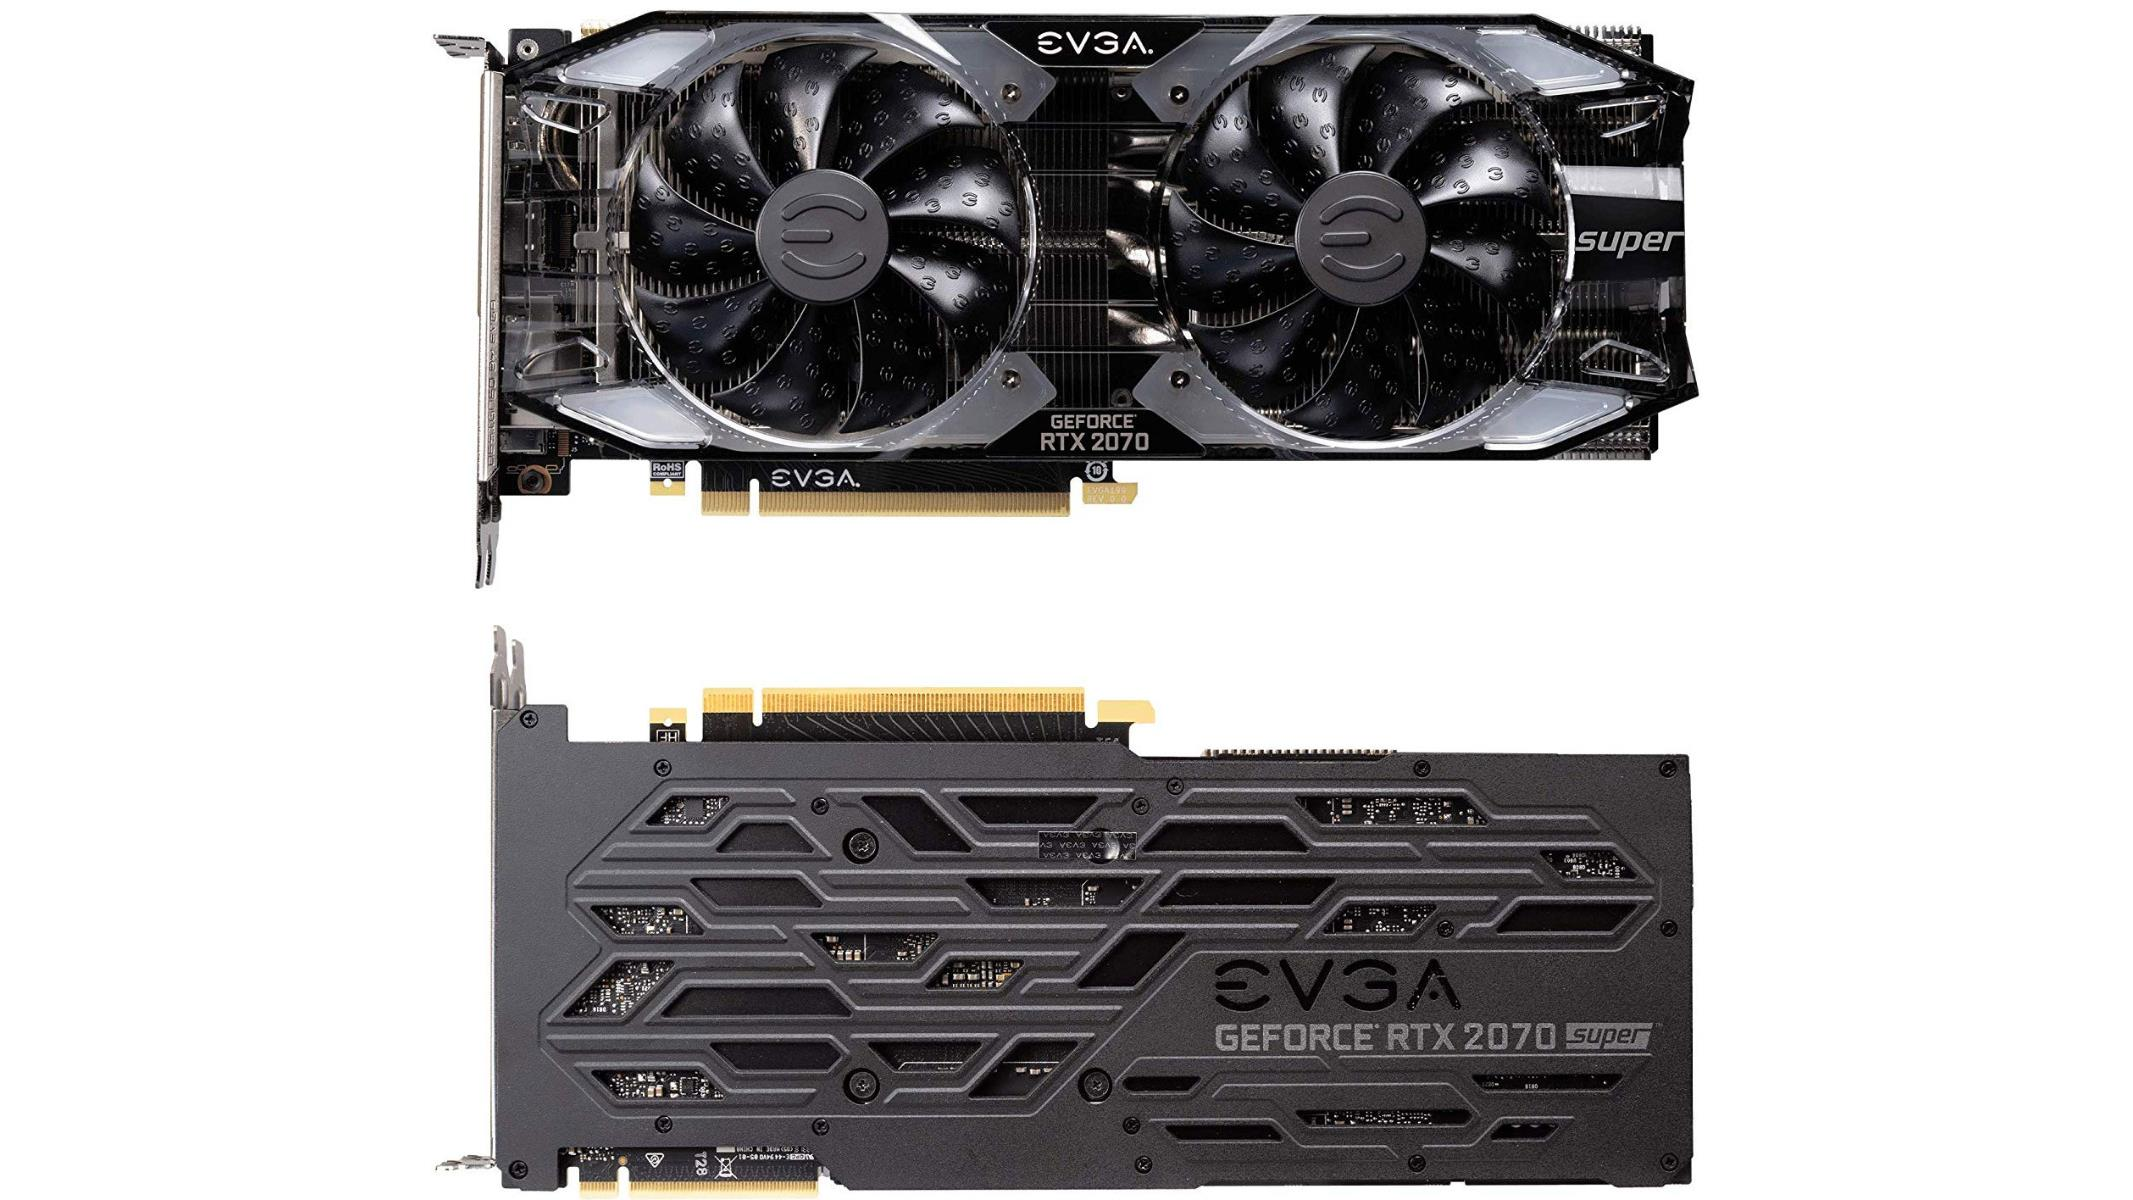 EVGA GeForce RTX 2060 Super And RTX 2070 Super Gaming Cards